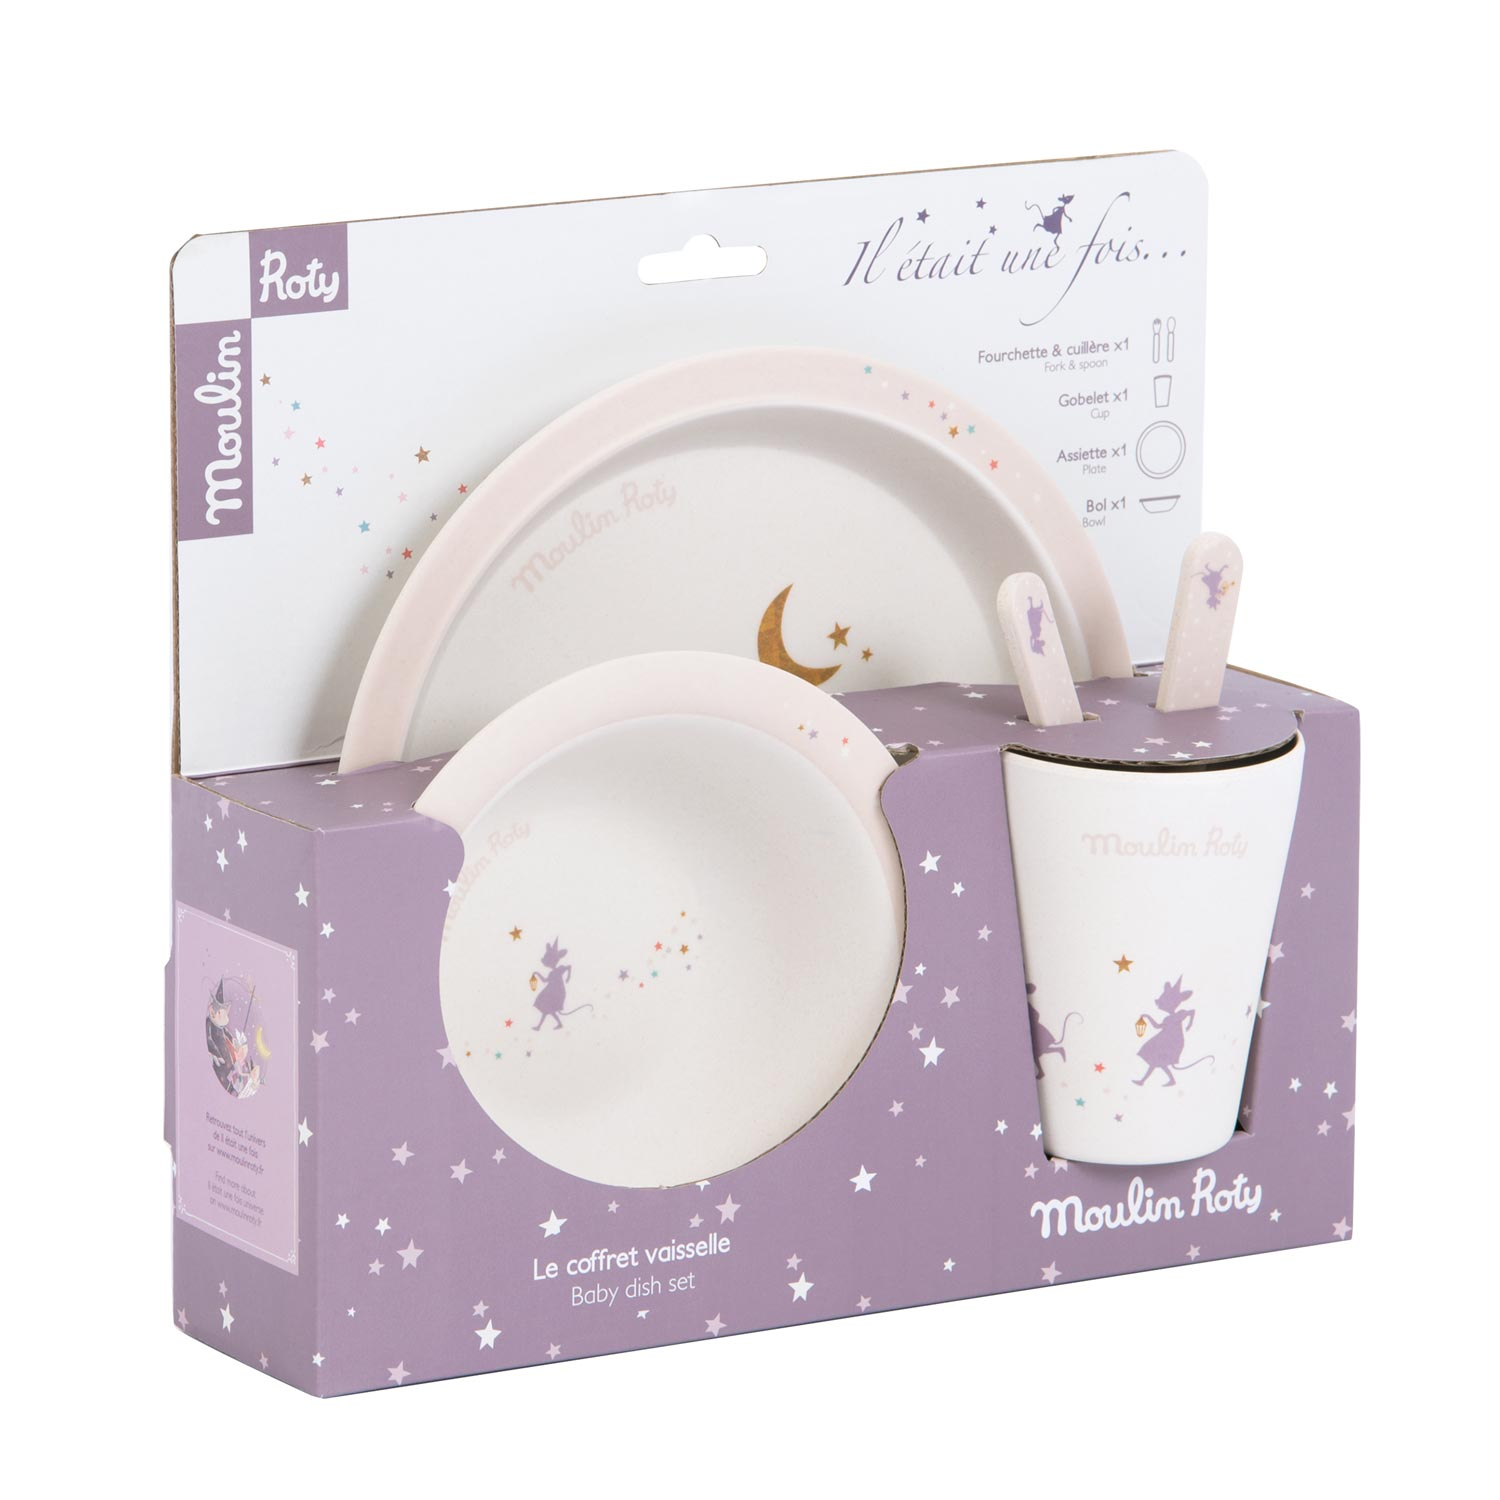 il etait dish set - once upon a time - tableware